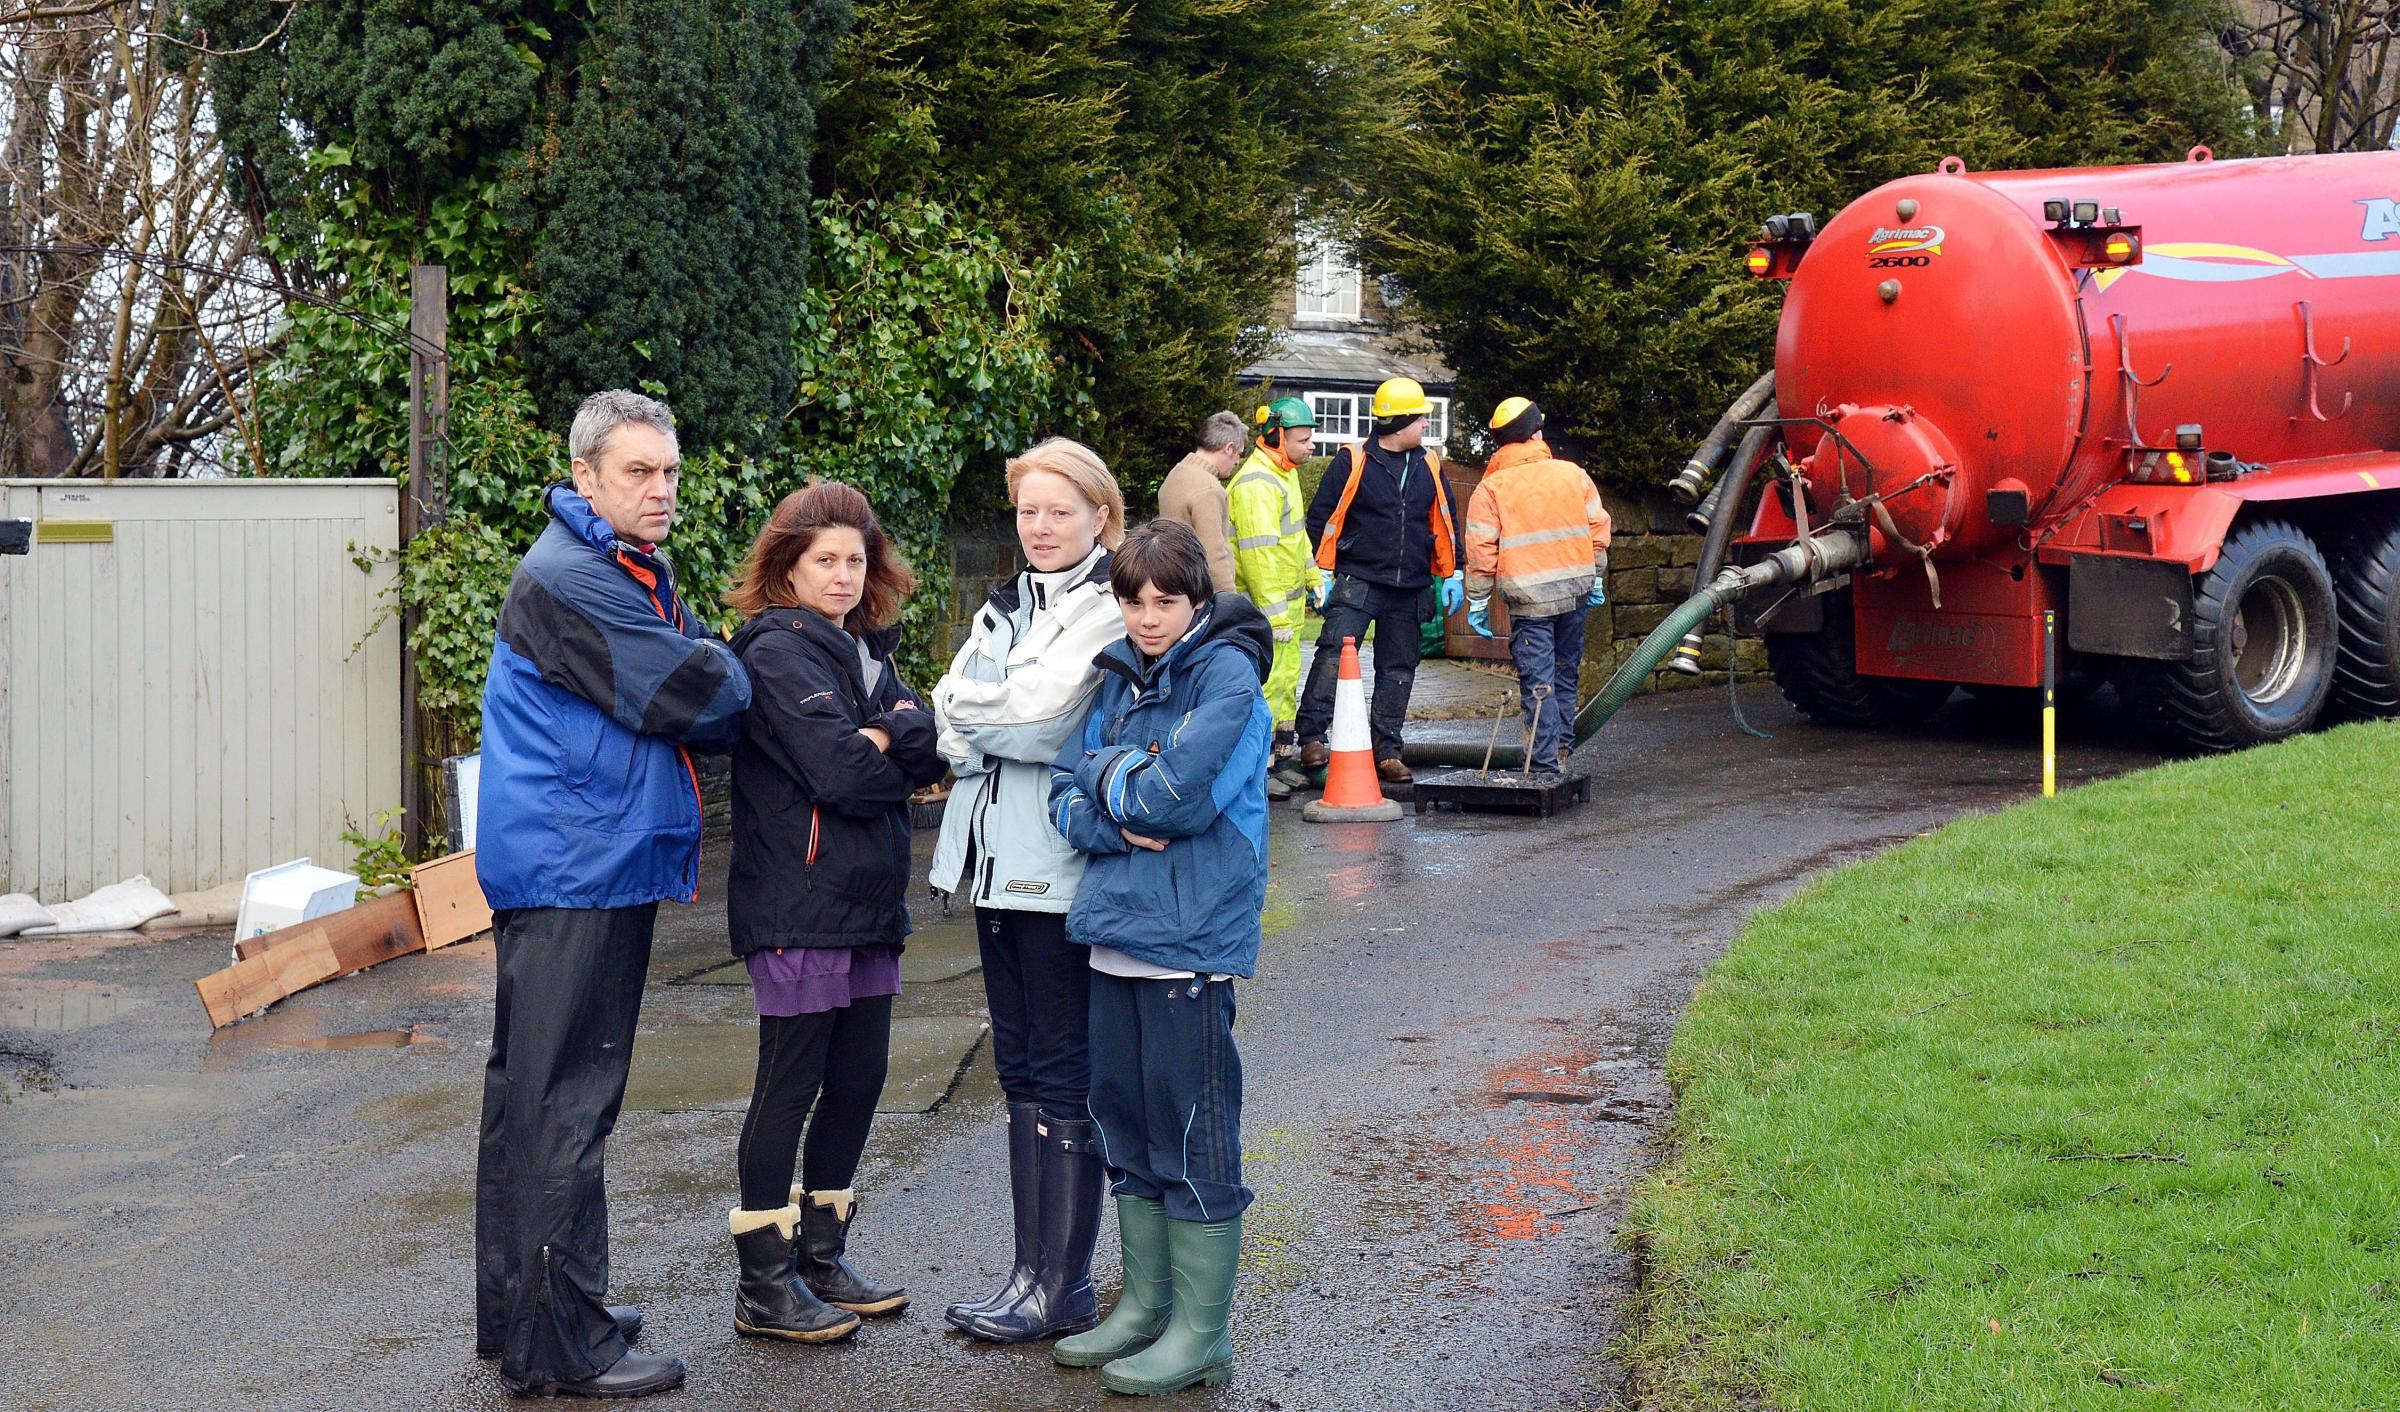 Residents Ronnie Bagdonavicius,Caroline Bagdonavicius, Kate Wild, and Harrison Houldsworth wait as workmen clear the sewer